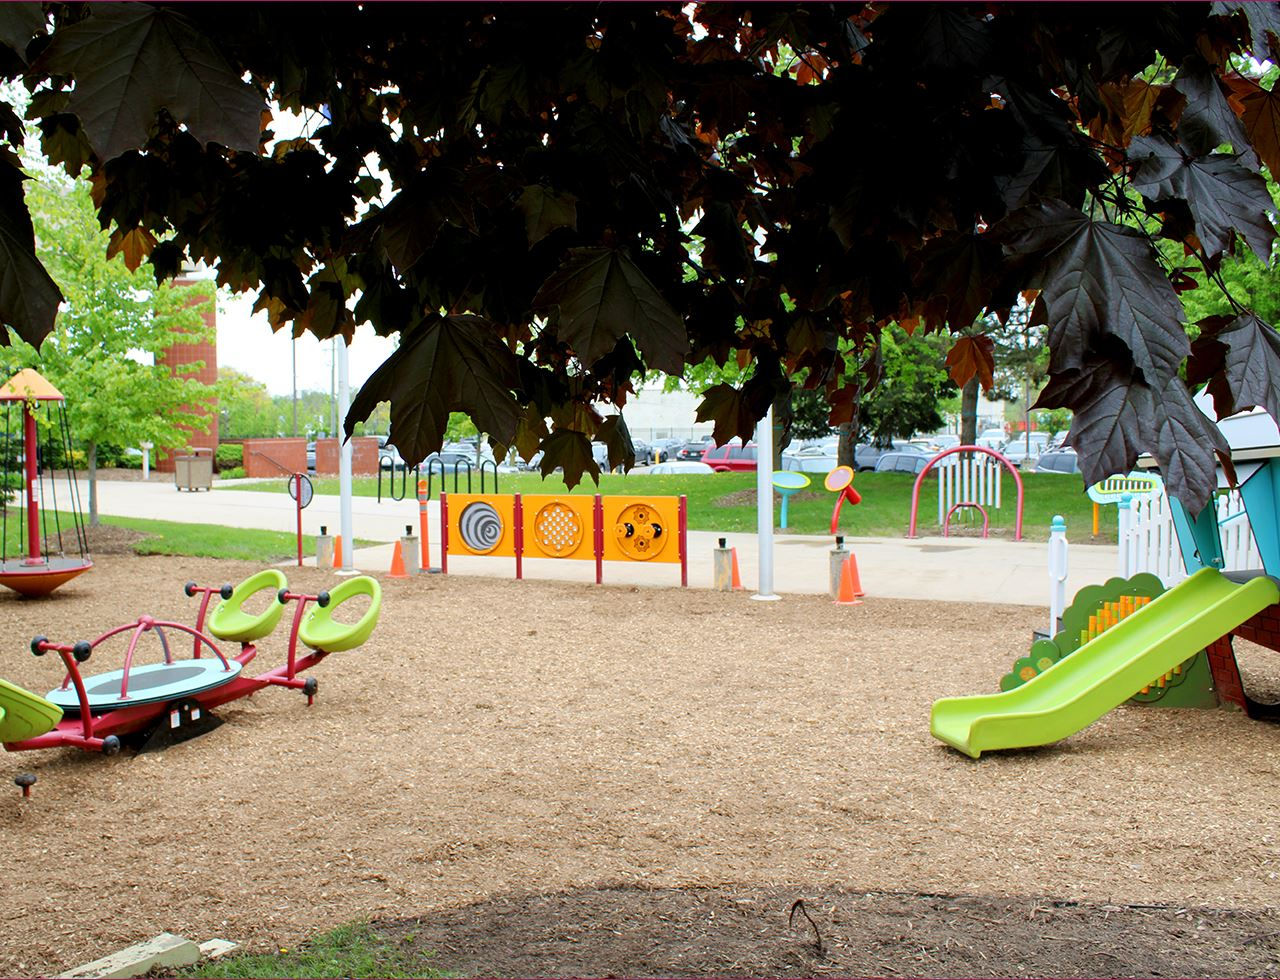 New play equipment at Washtenaw County Health Department